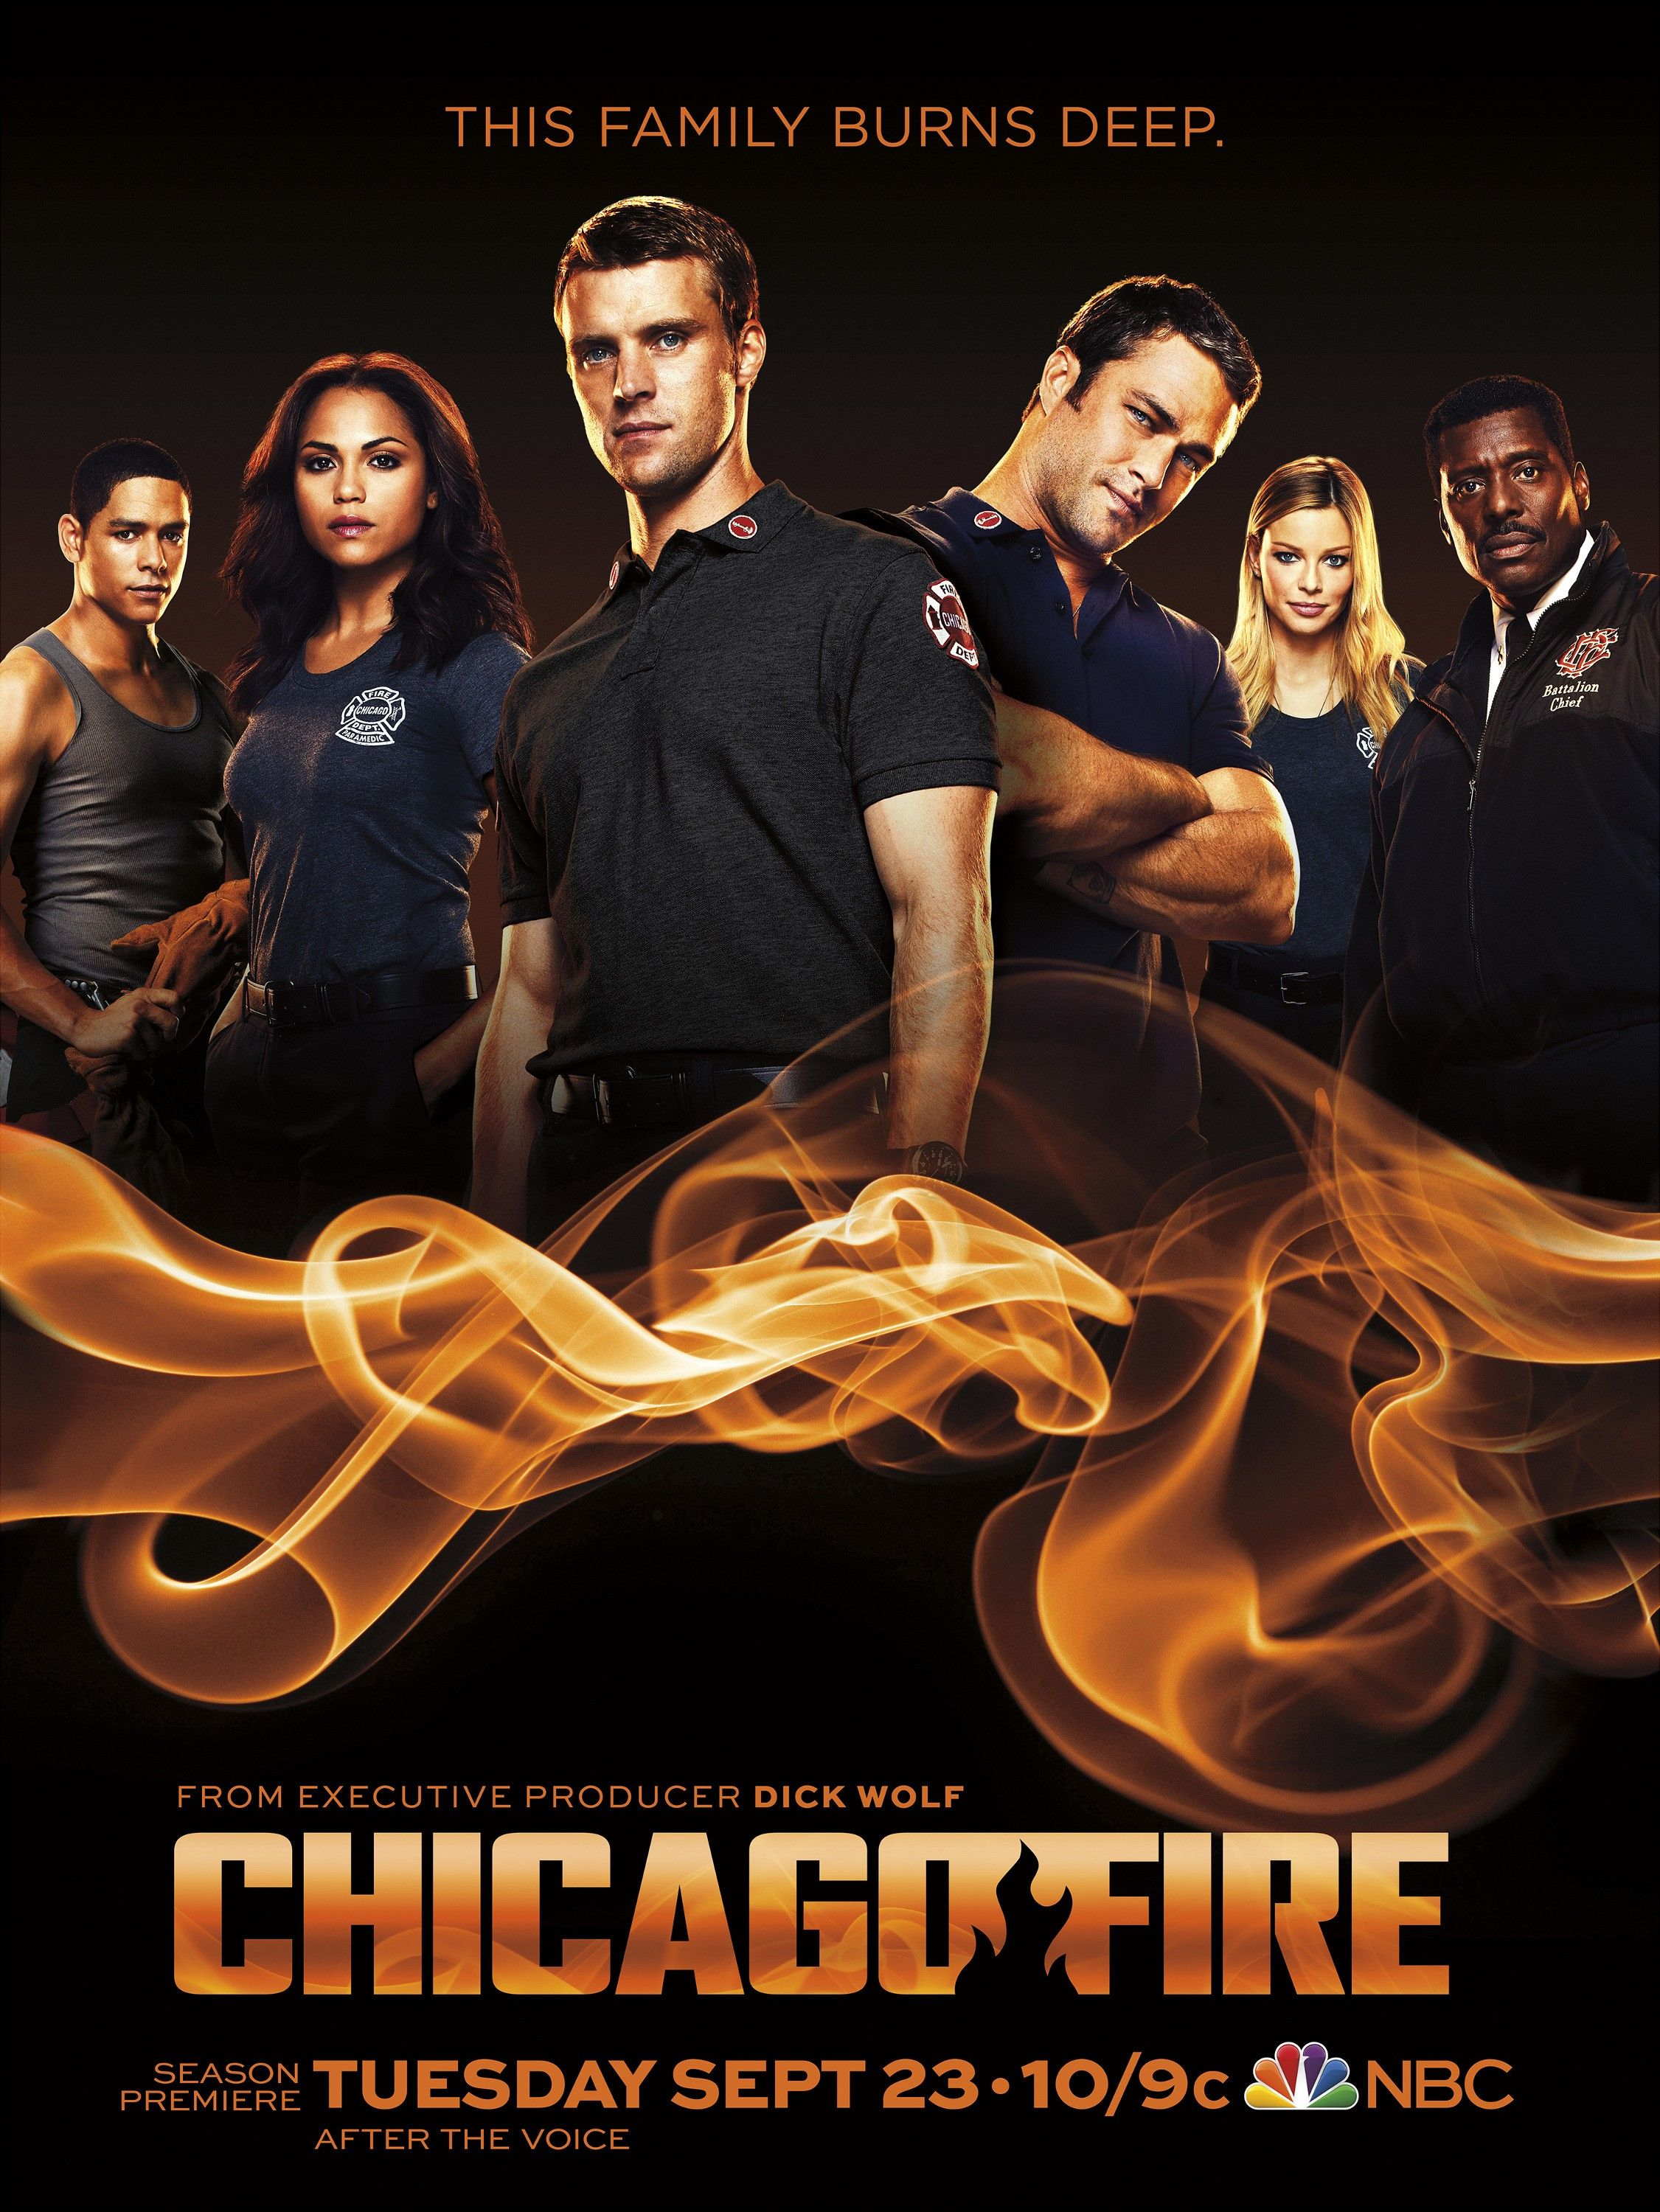 Chicago Fire Mega Sized Movie Poster Image Internet Movie Poster Awards Gallery Chicago Fire Chicago Fire Season 5 Chicago